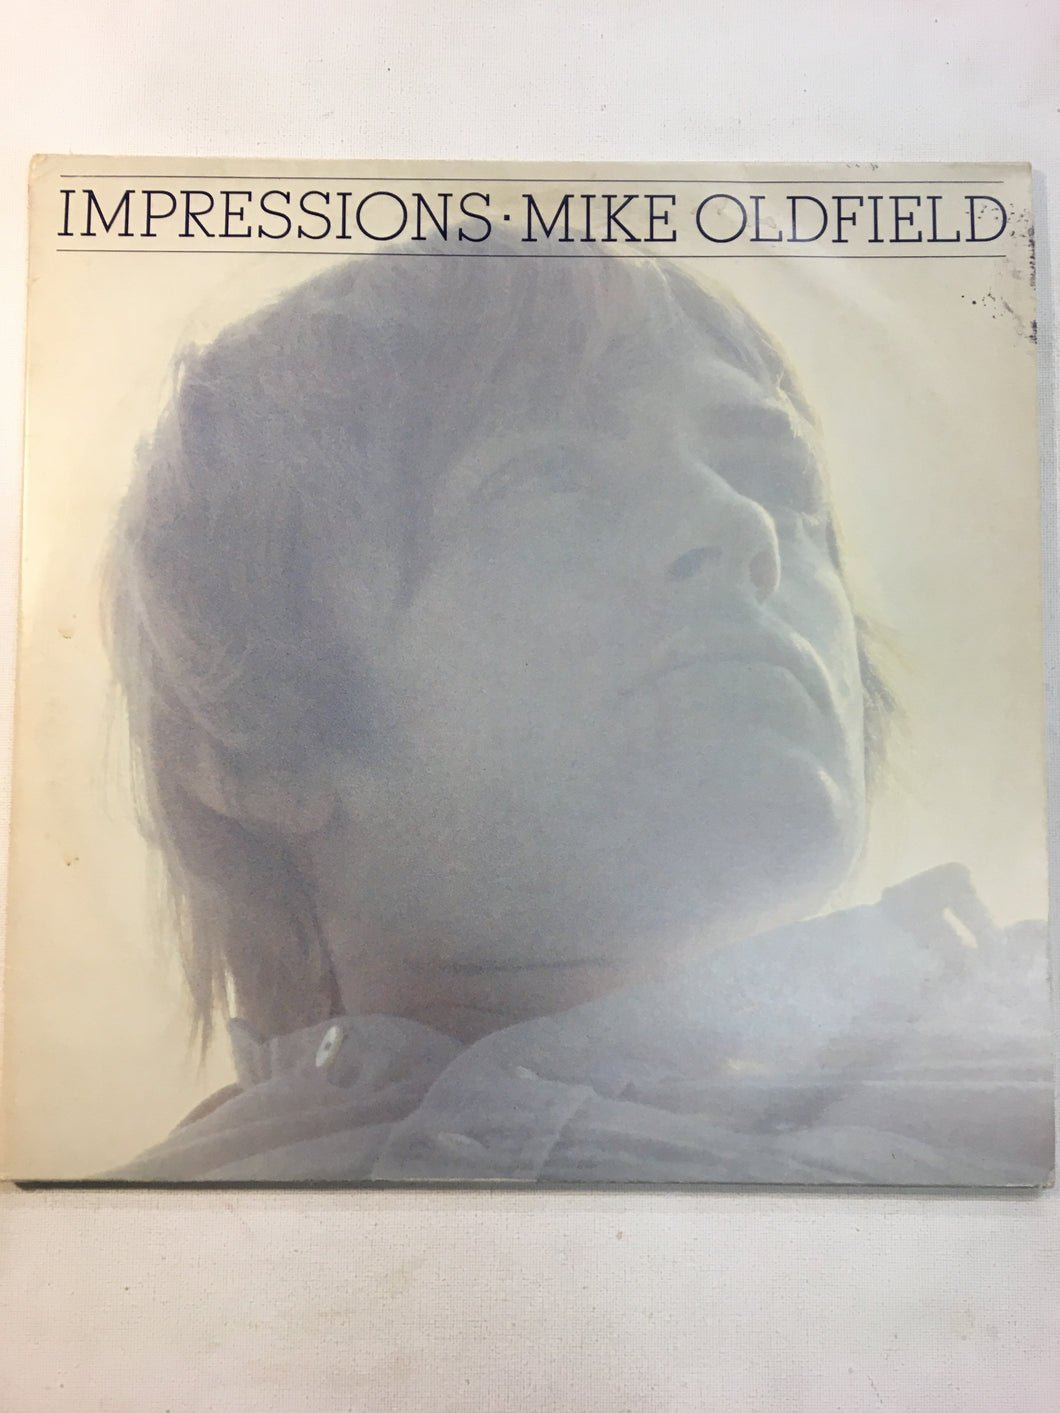 MIKE OLDFIELD 2 LP ; IMPRESSIONS